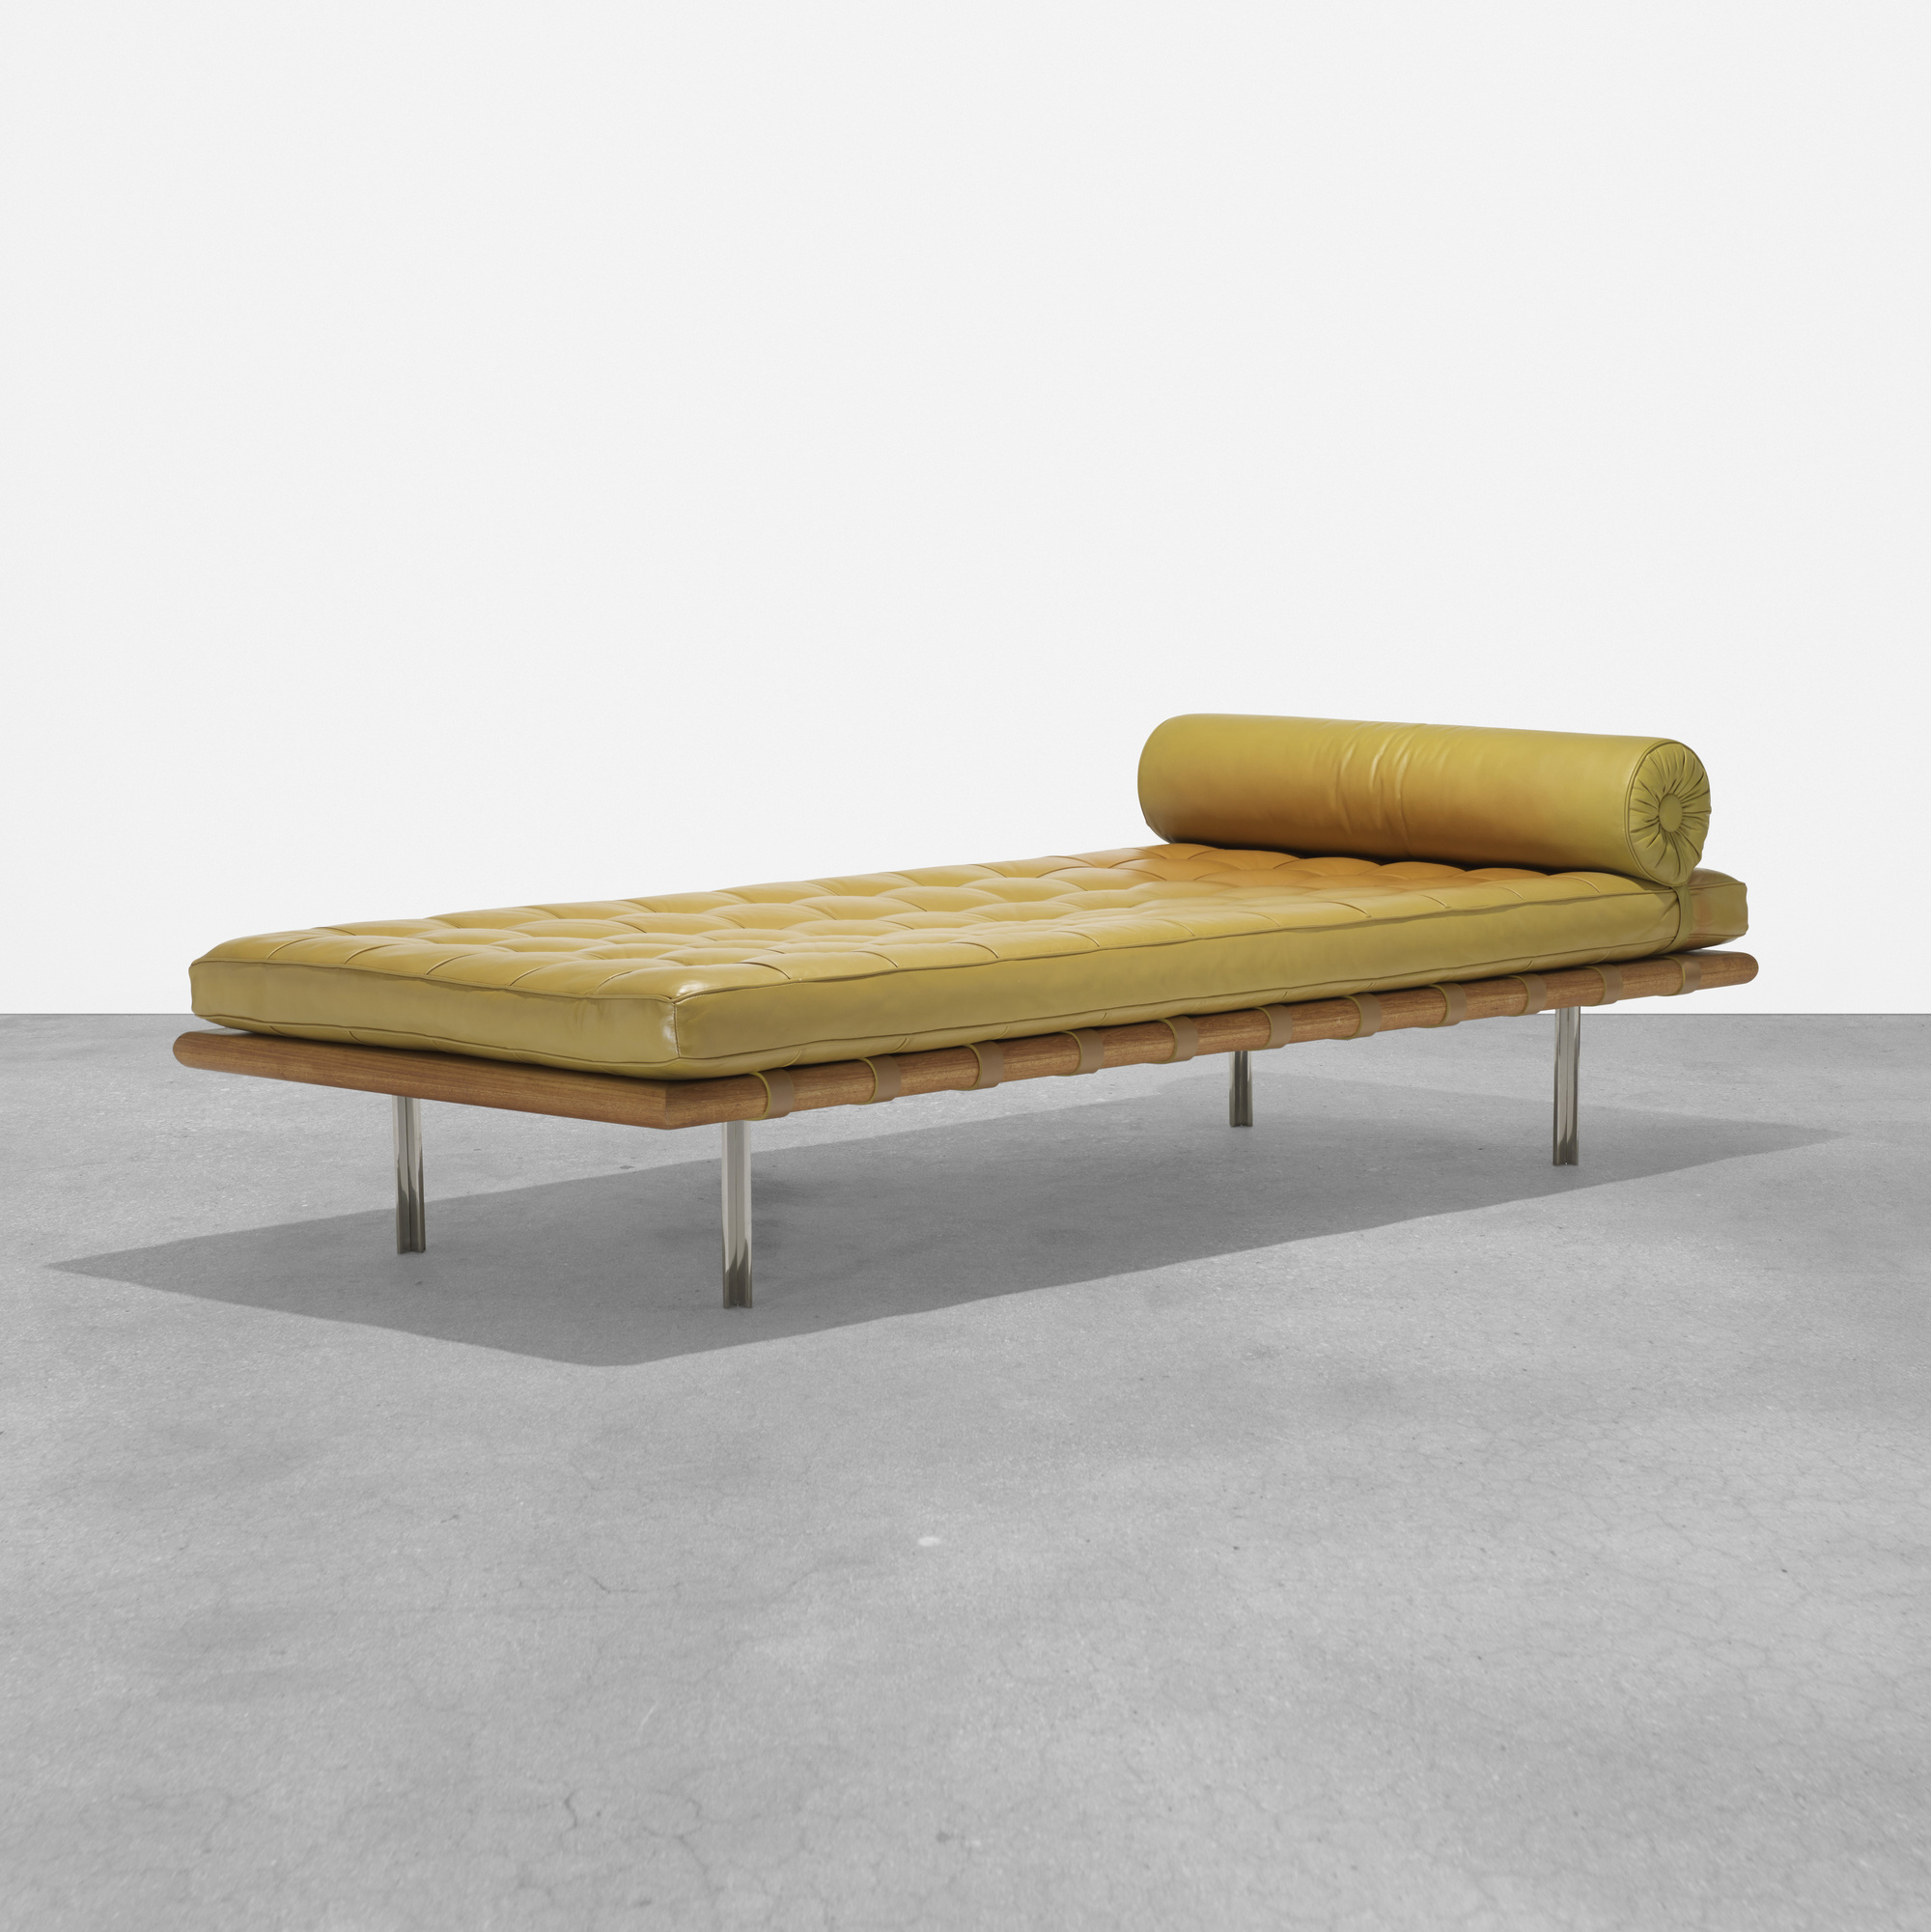 157: Ludwig Mies van der Rohe / Barcelona daybed from 860 Lake Shore Drive, Chicago (1 of 3)